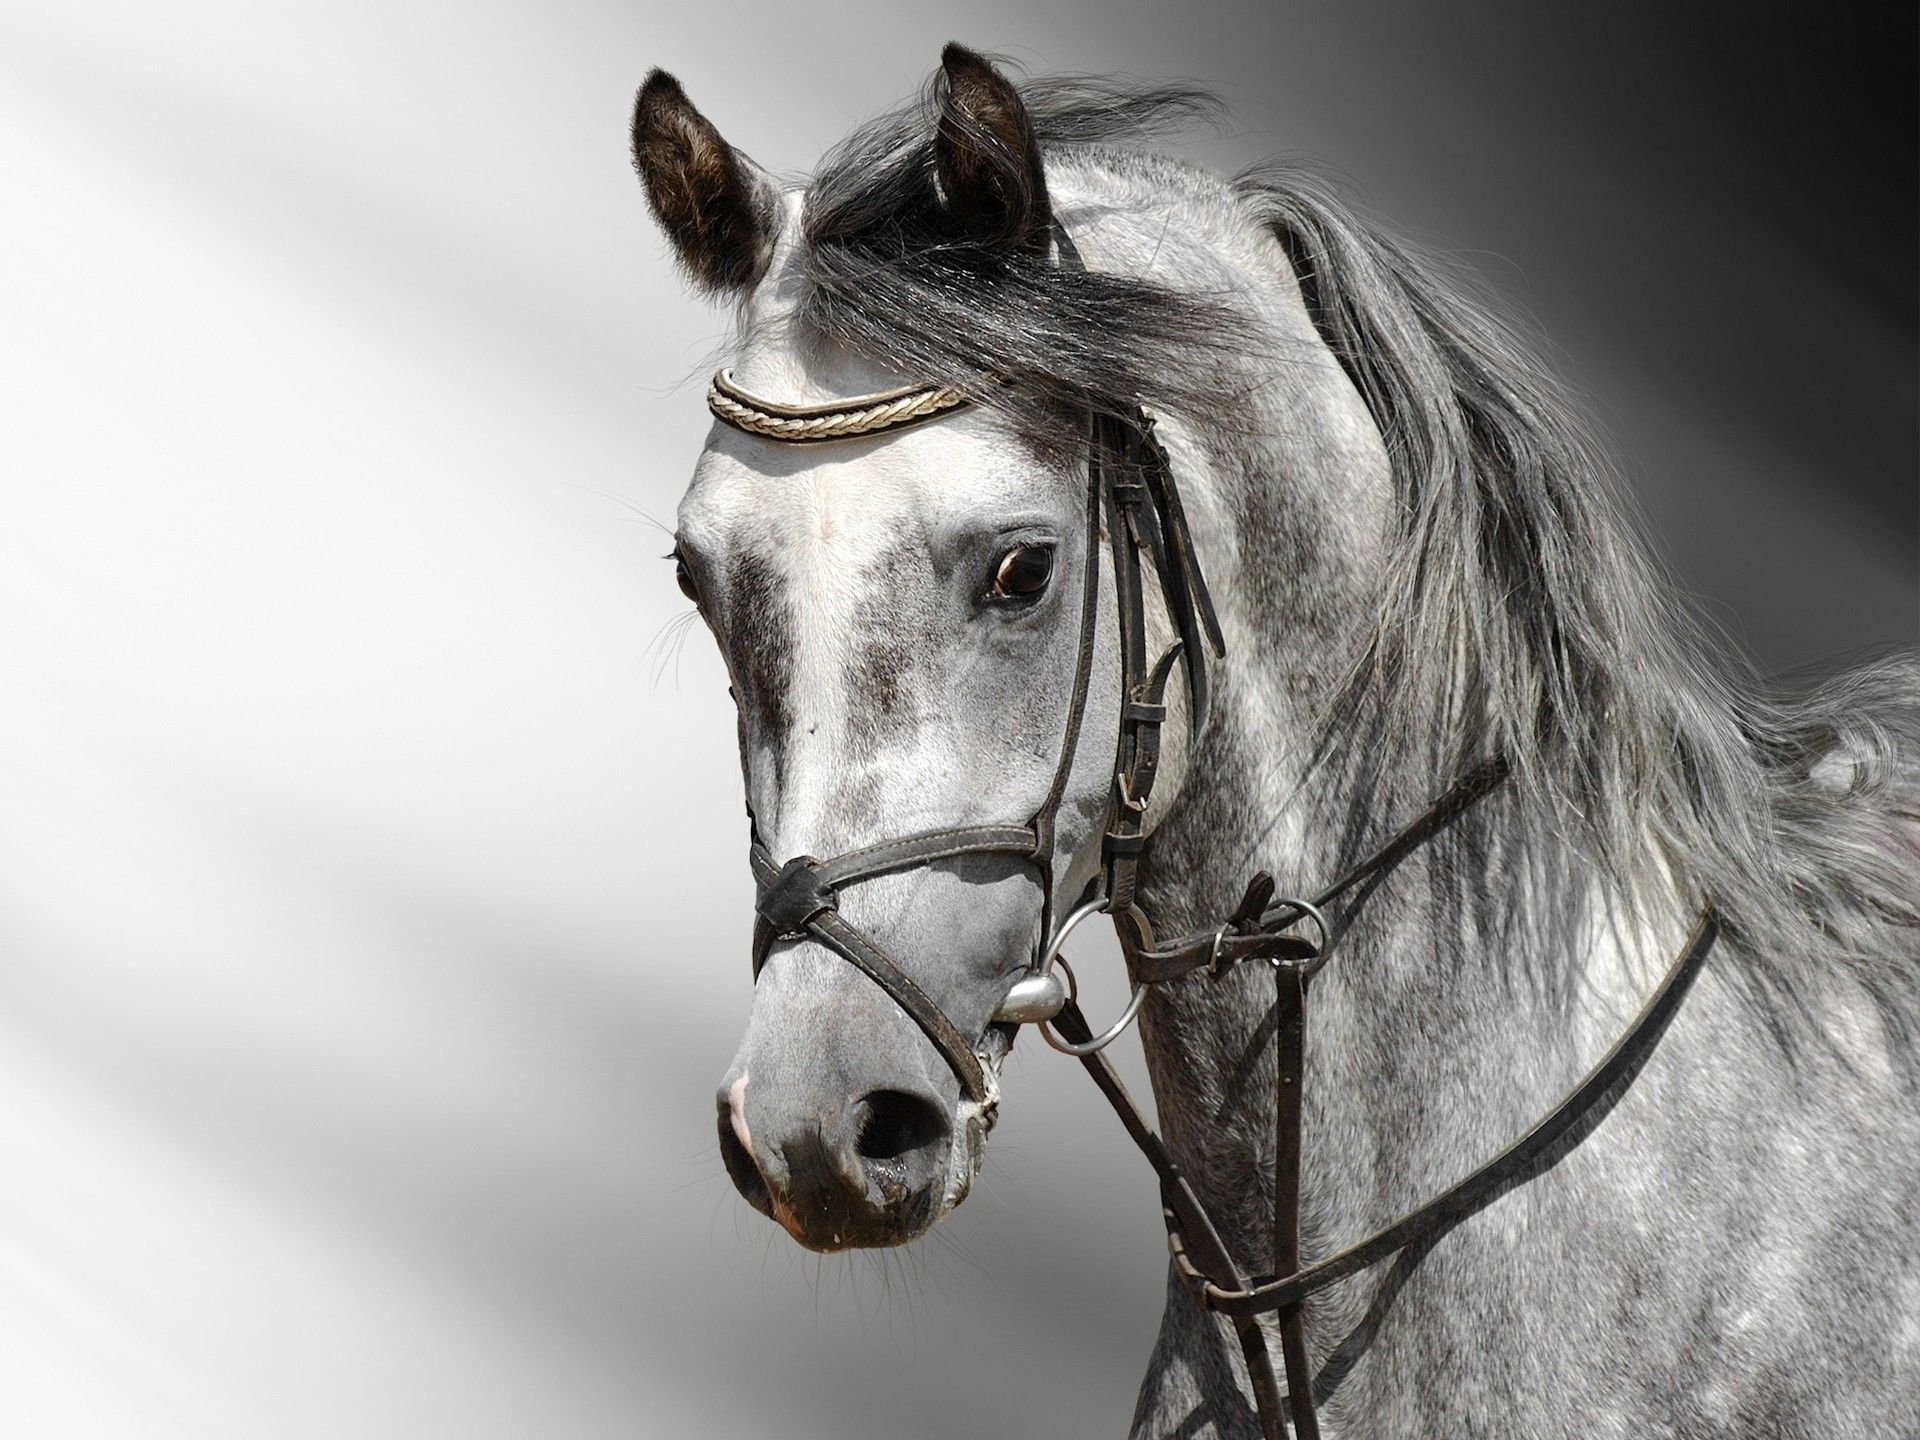 Horse Wallpaper Desktop 5lW Animals Pinterest Horse